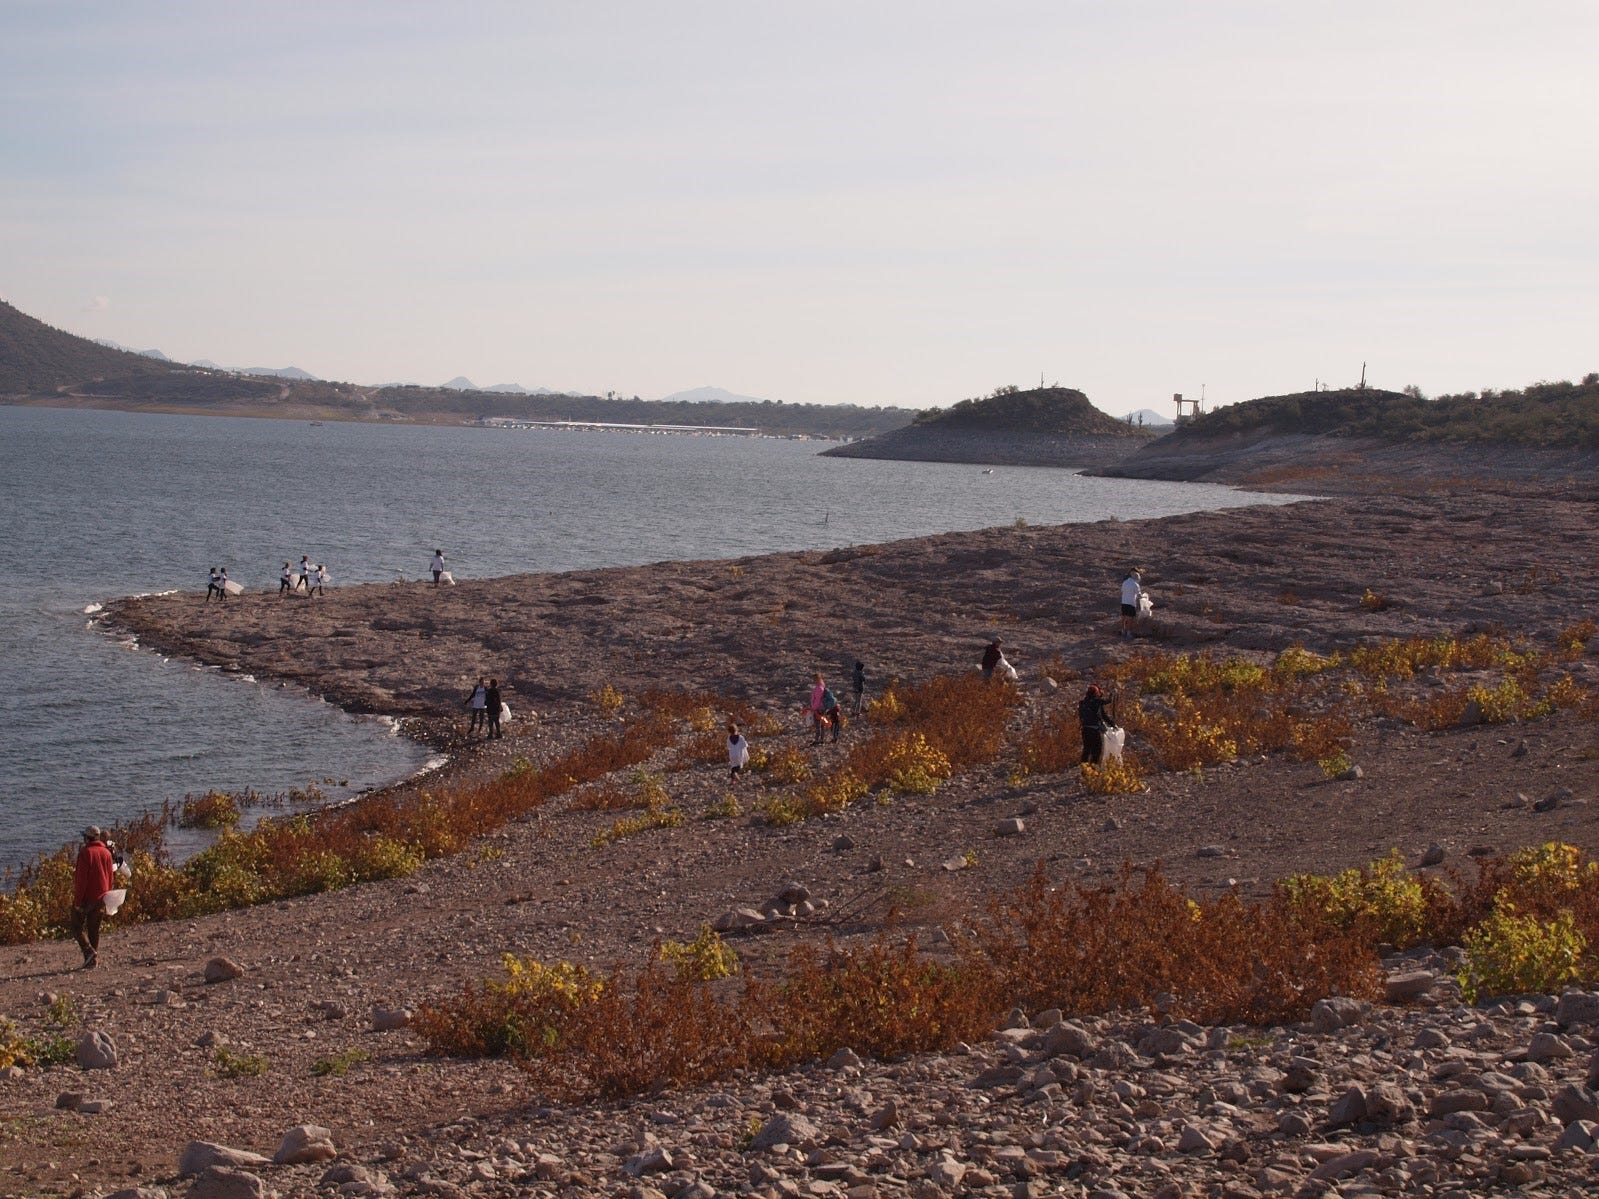 Volunteers scatter along the shoreline of Lake Pleasant near the lake's boat dock for Keep Nature Wild's Impact Friday cleanup on Nov. 23, 2018.